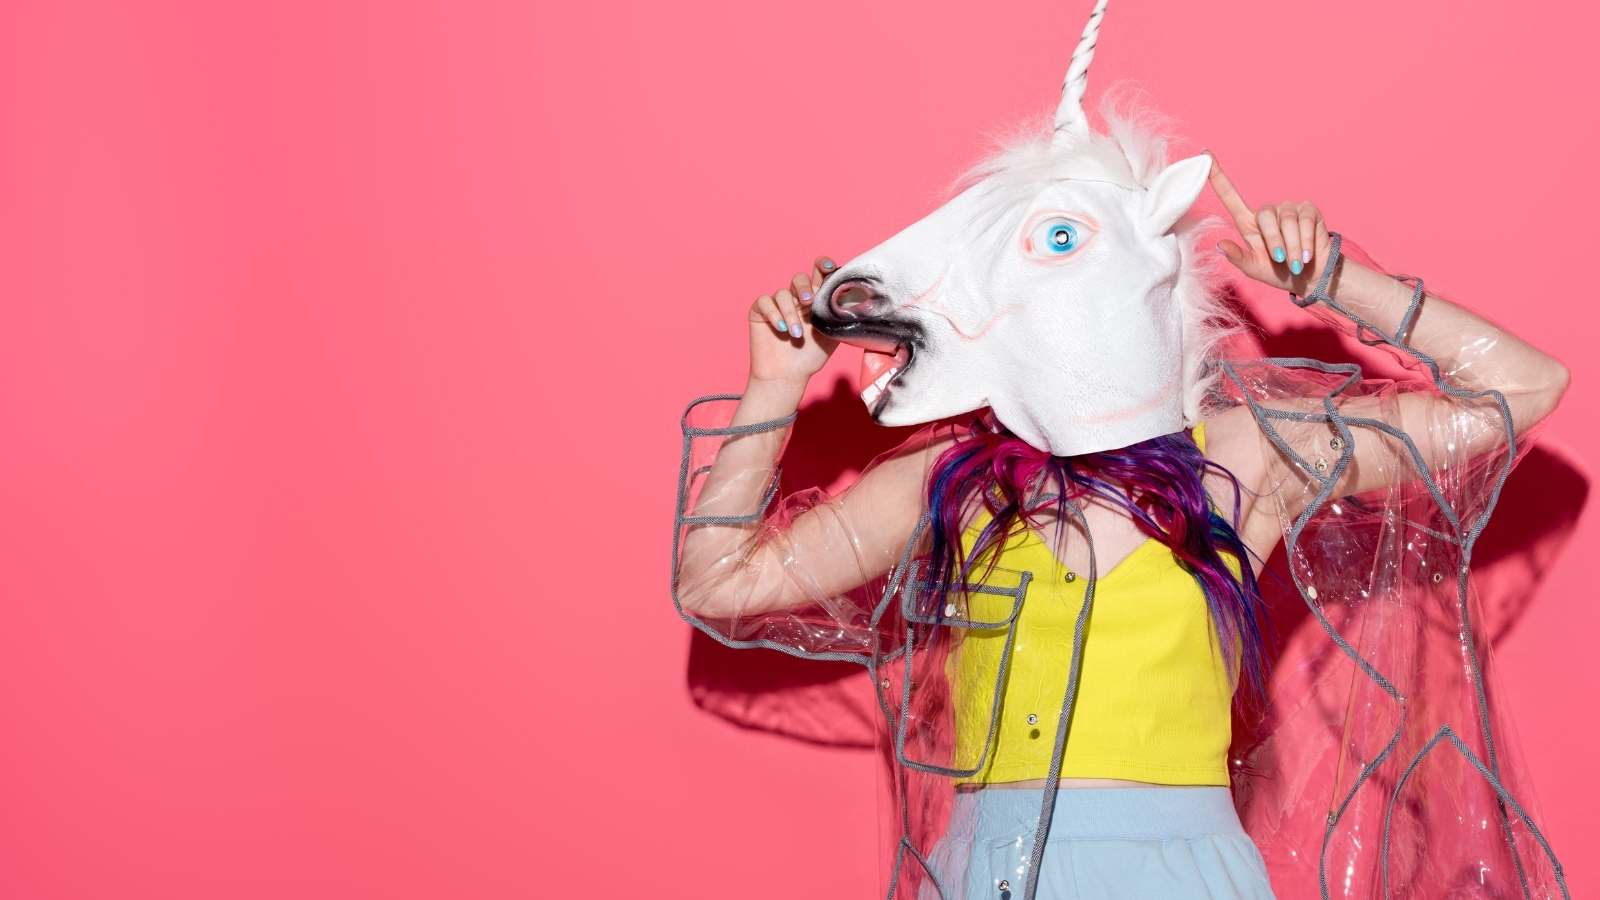 person in a unicorn mask against pink background